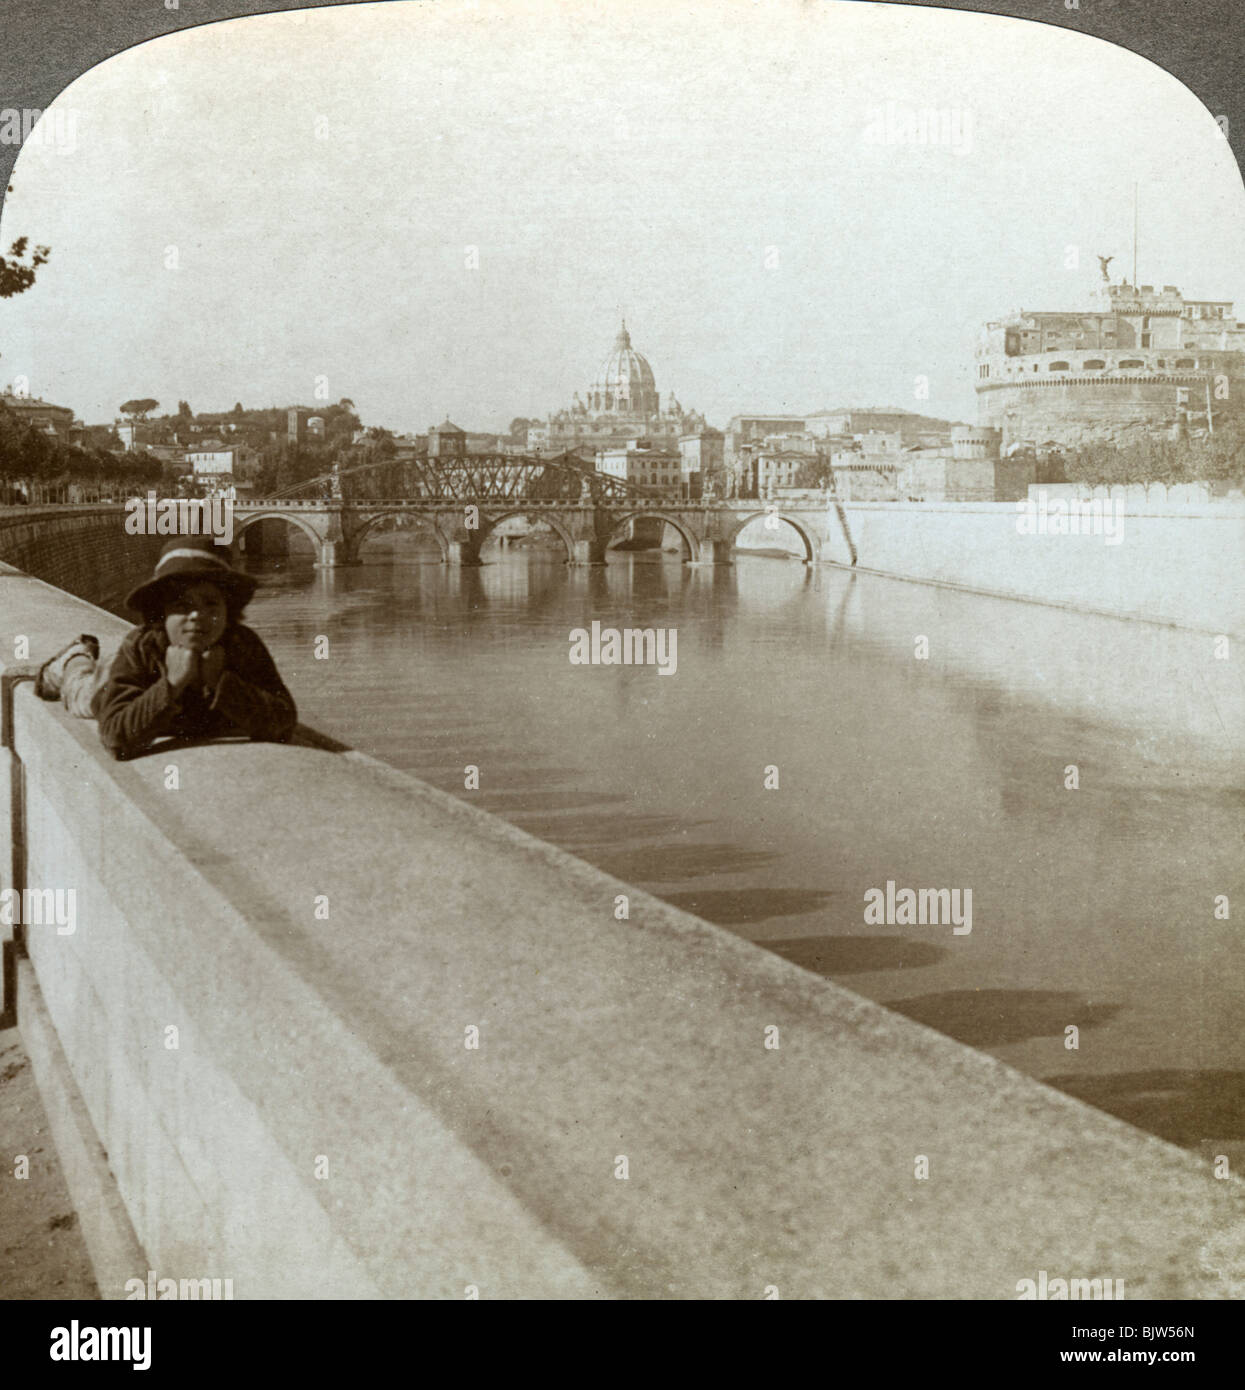 The River Tiber, Castel Sant' Angelo and St Peter's Basilica, Rome, Italy. - Stock Image